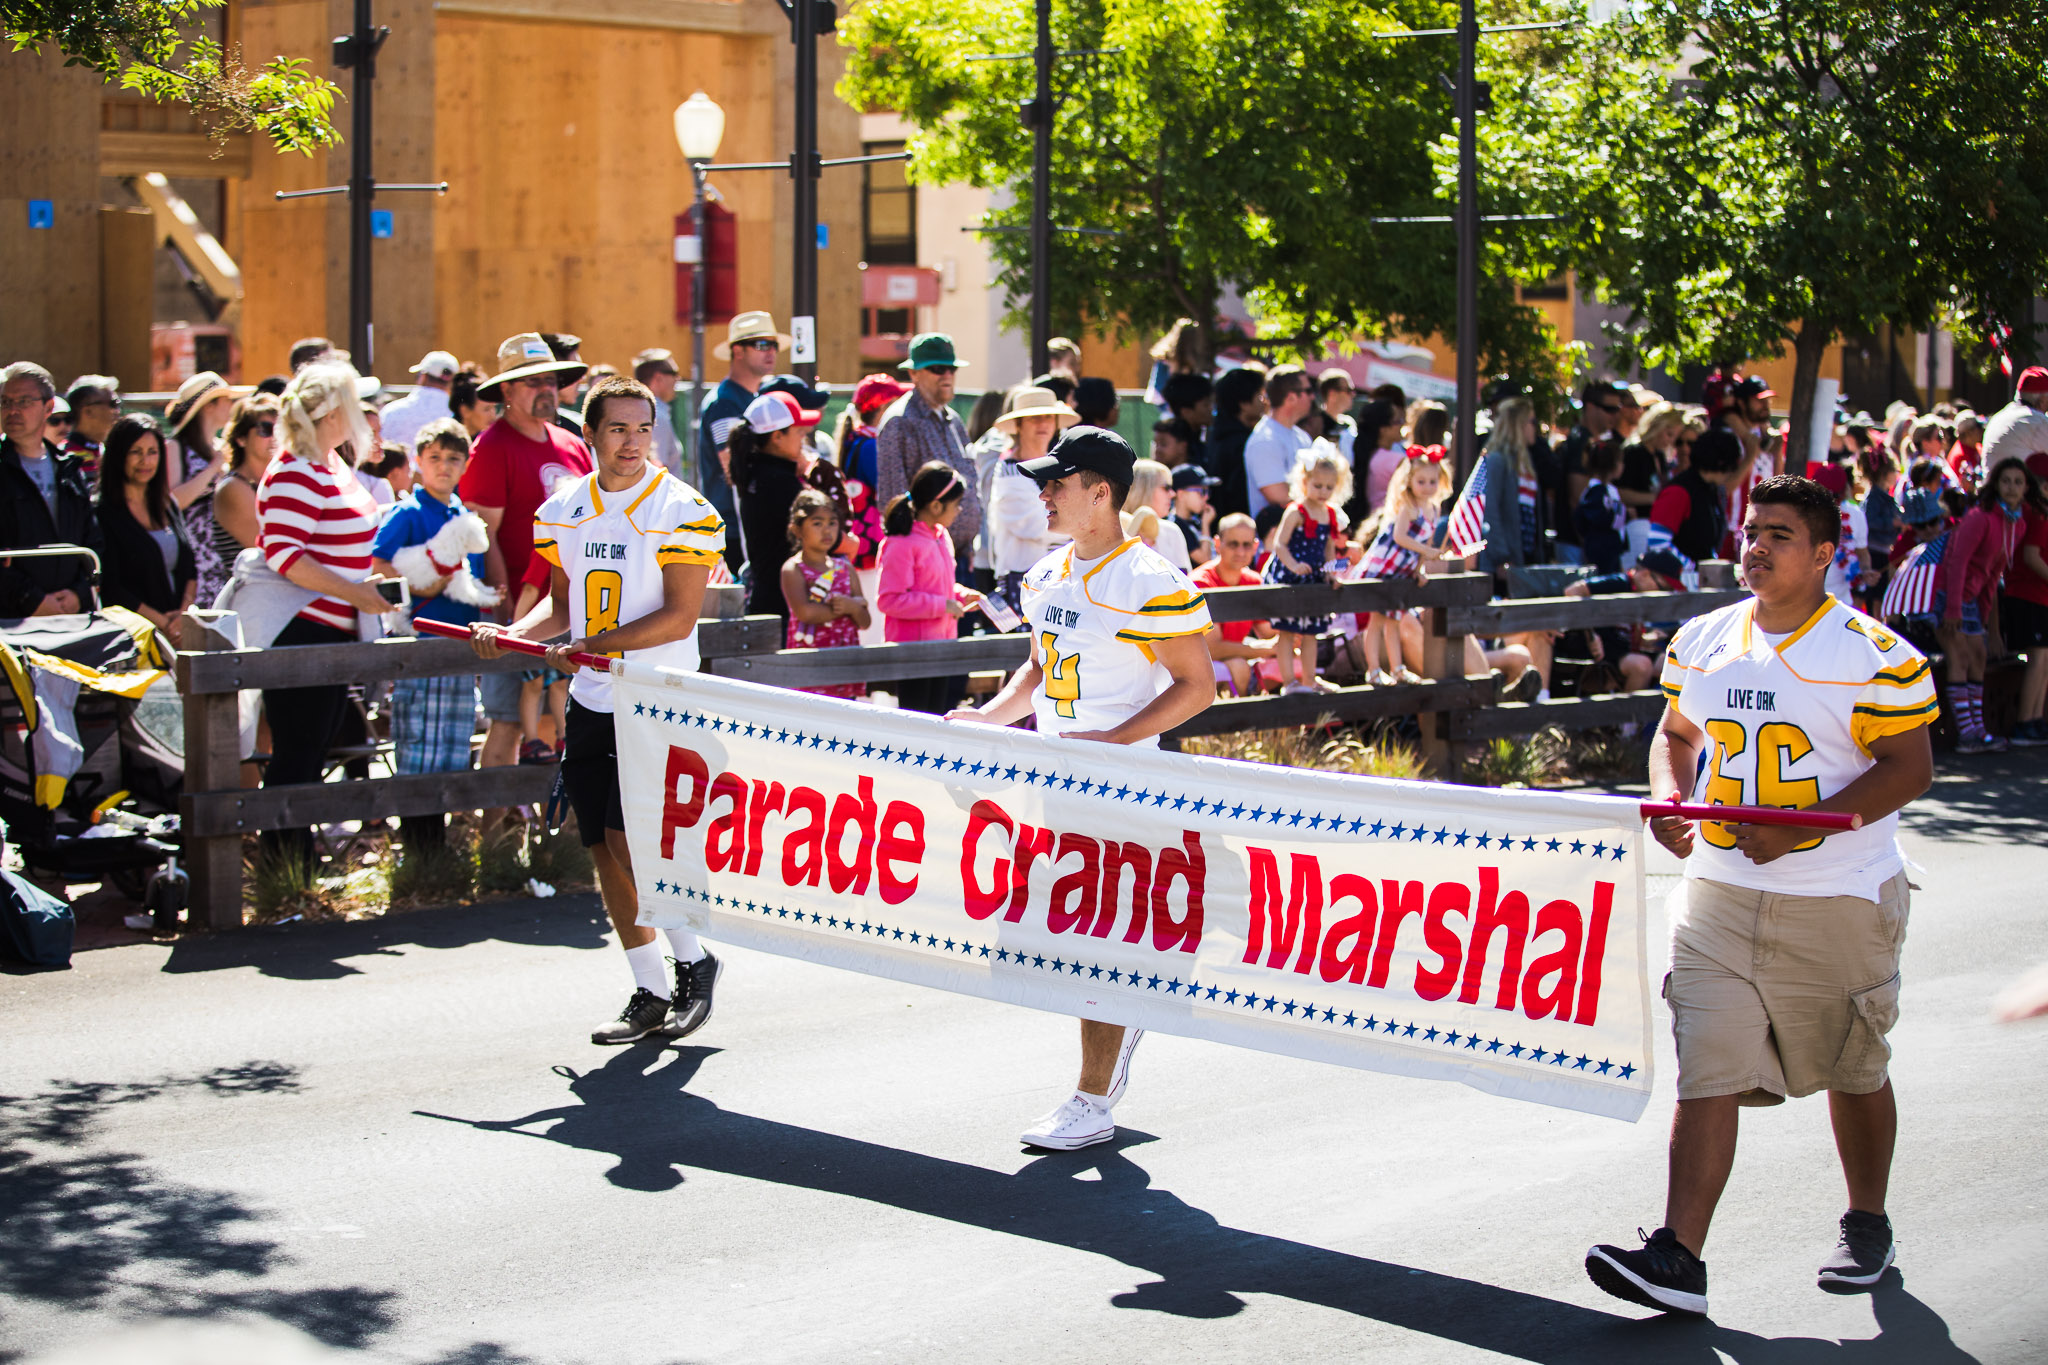 Archer_Inspired_Photography_Morgan_Hill_California_4th_of_july_parade-41.jpg